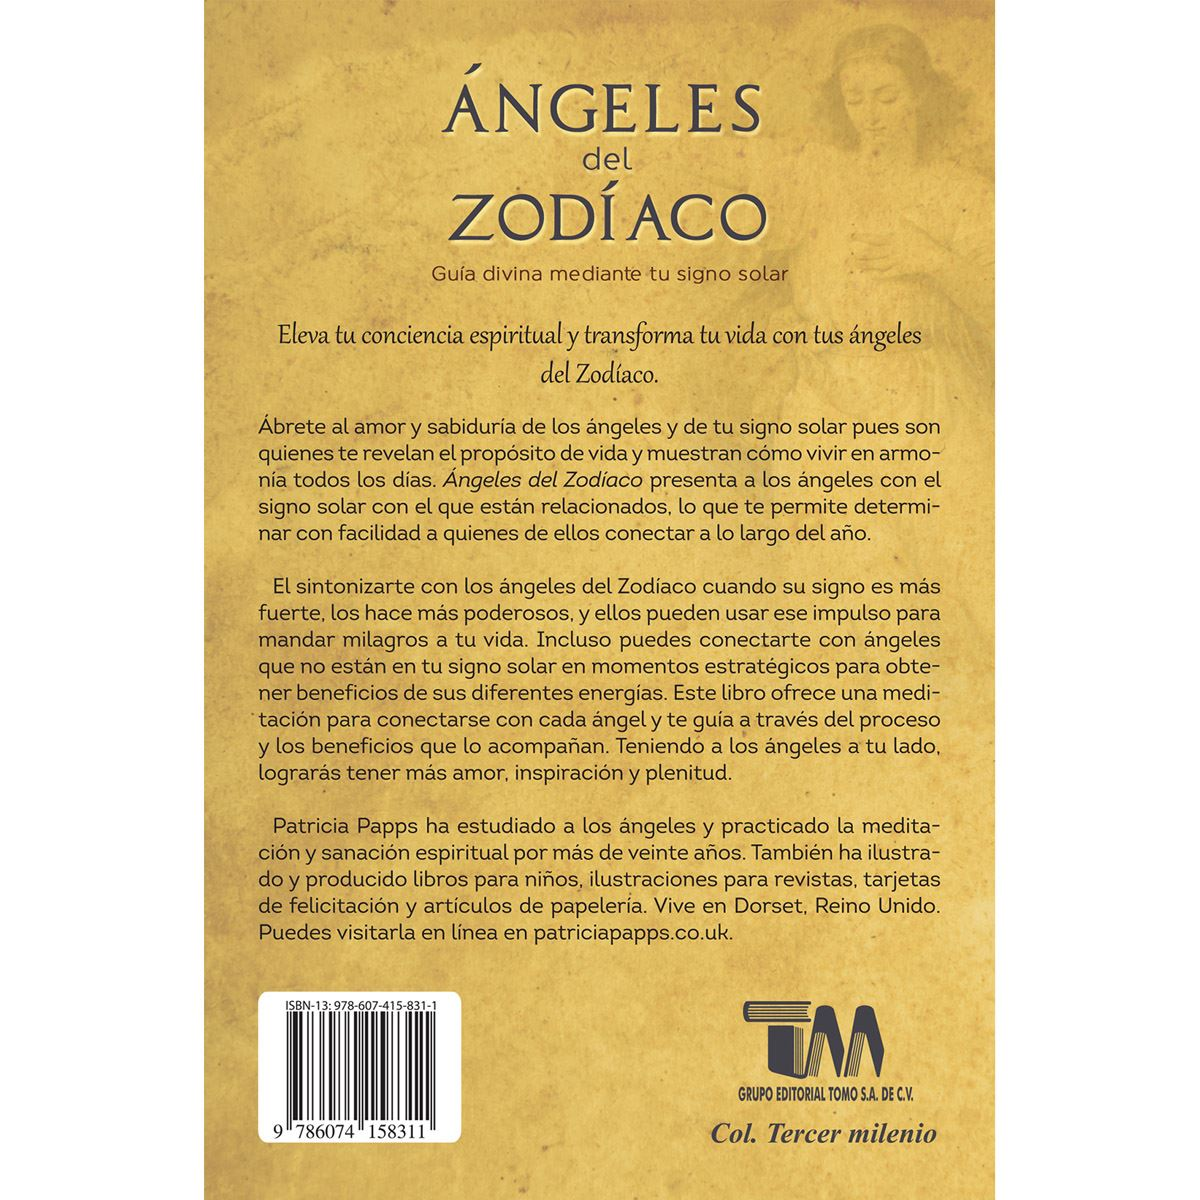 Angeles del zodíaco Libro - Sanborns